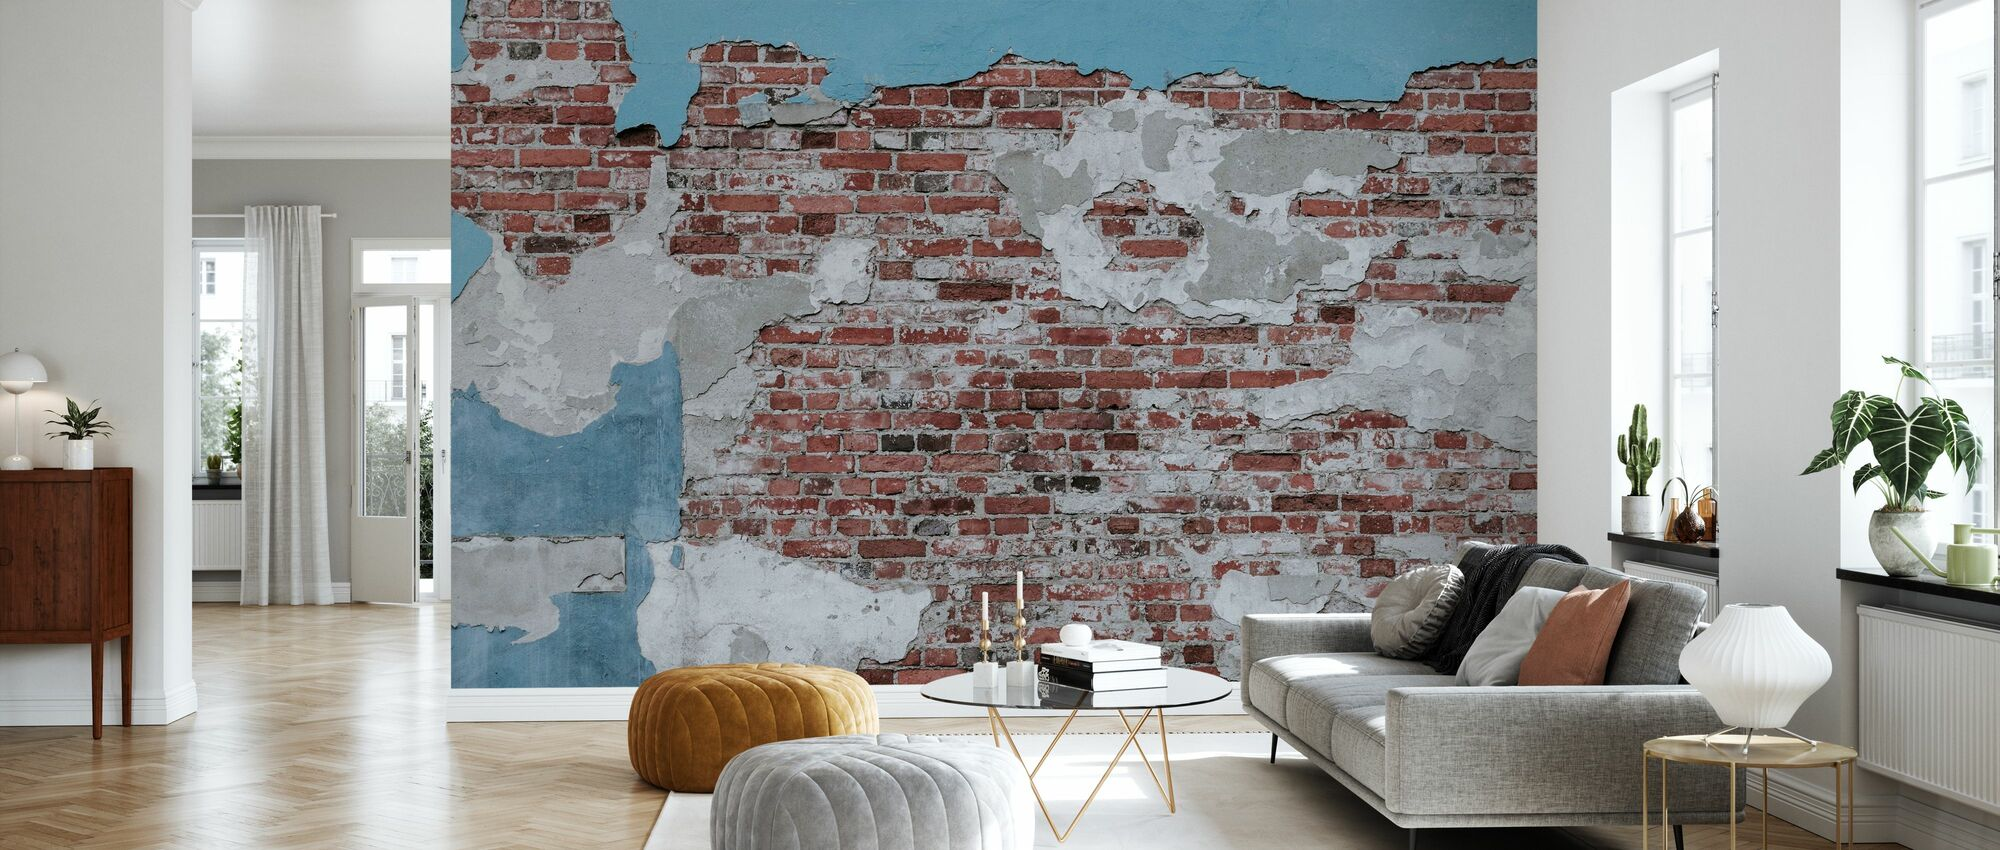 Worn Out Wall - Wallpaper - Living Room